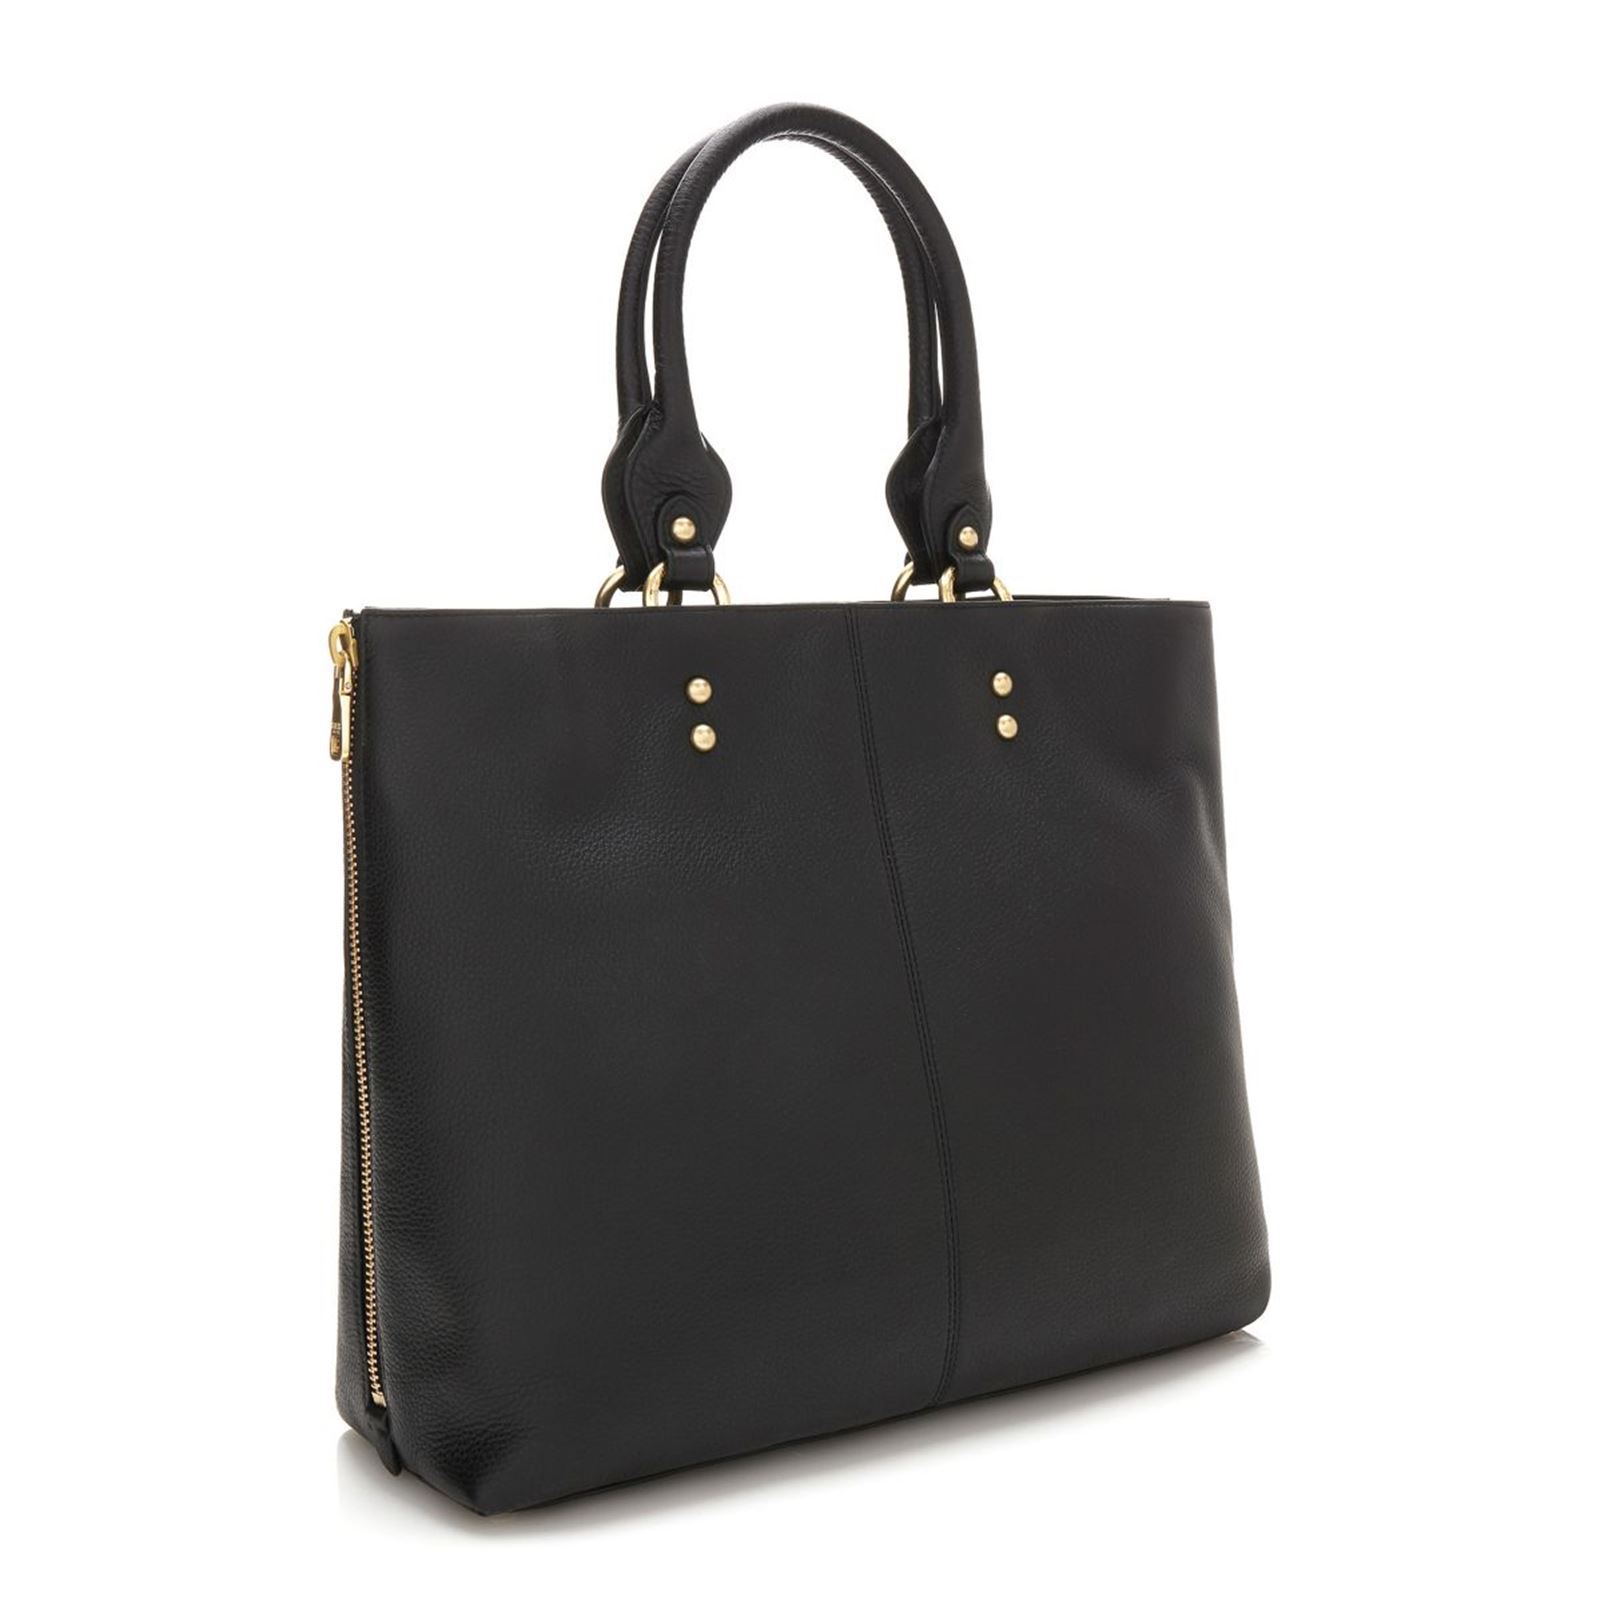 Cuir Noir Main Sac Brandalley En Guess Margot À wyqXAFZgU 2b2cbc9043da